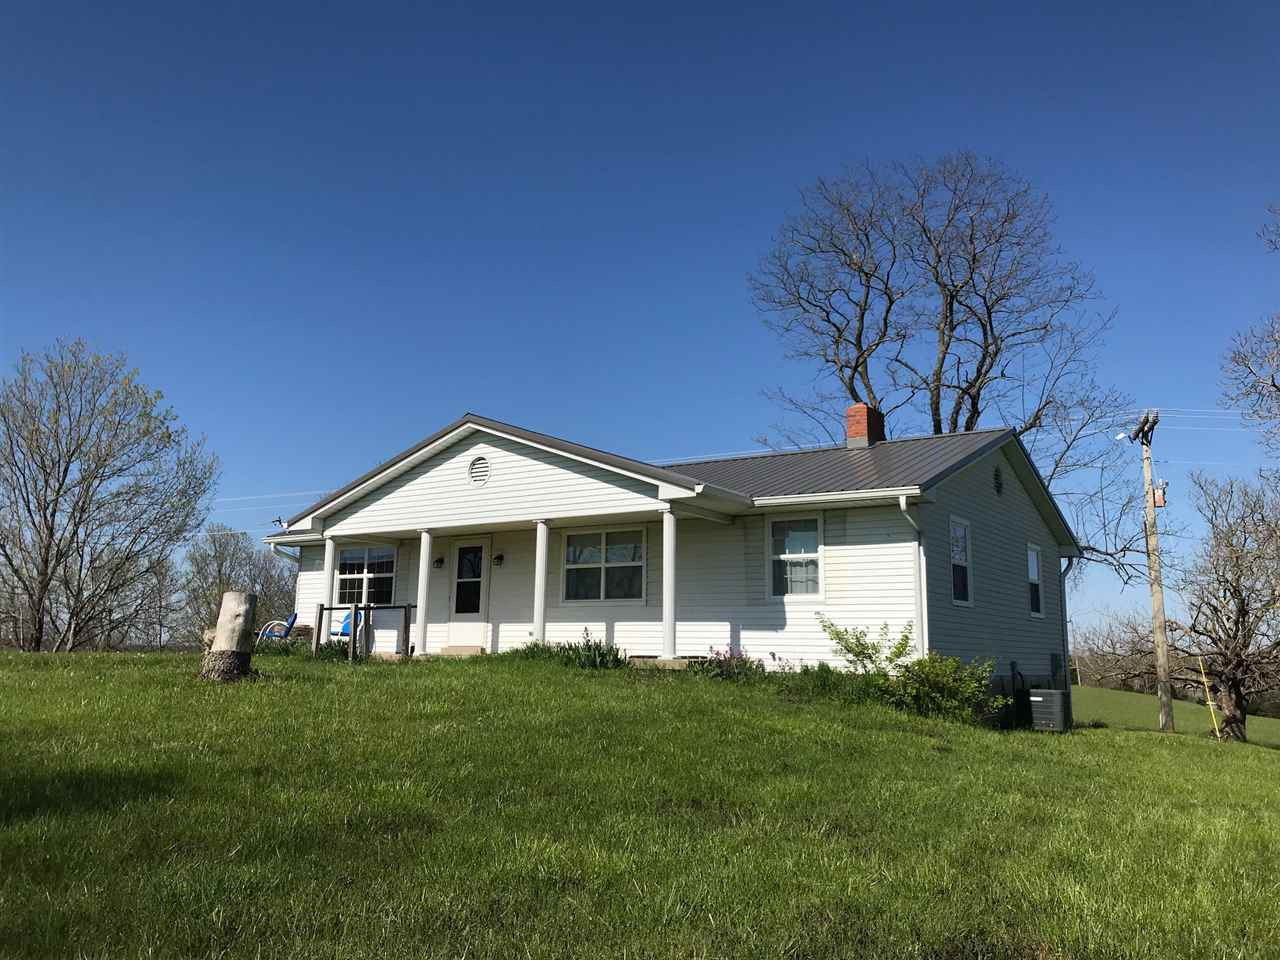 Photo 1 for 425 Mason Williamstown, KY 41097